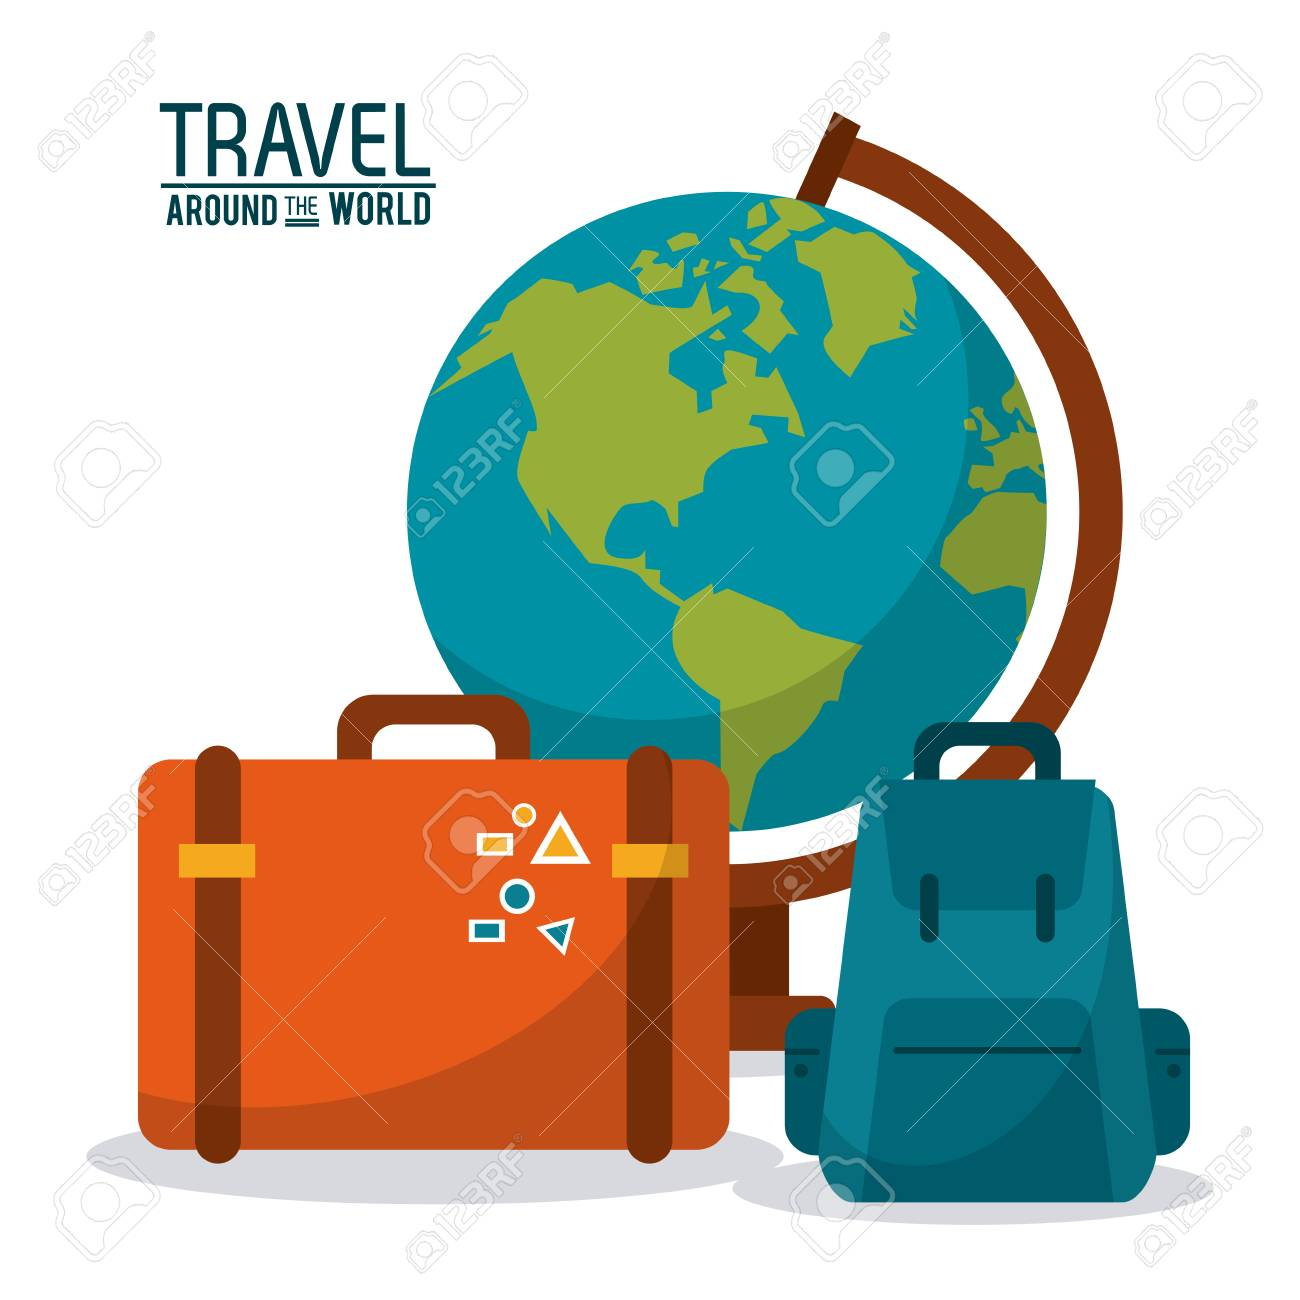 Travel around the world globe map backpack suitcase luggage travel around the world globe map backpack suitcase luggage vector illustration stock vector 78352715 gumiabroncs Image collections